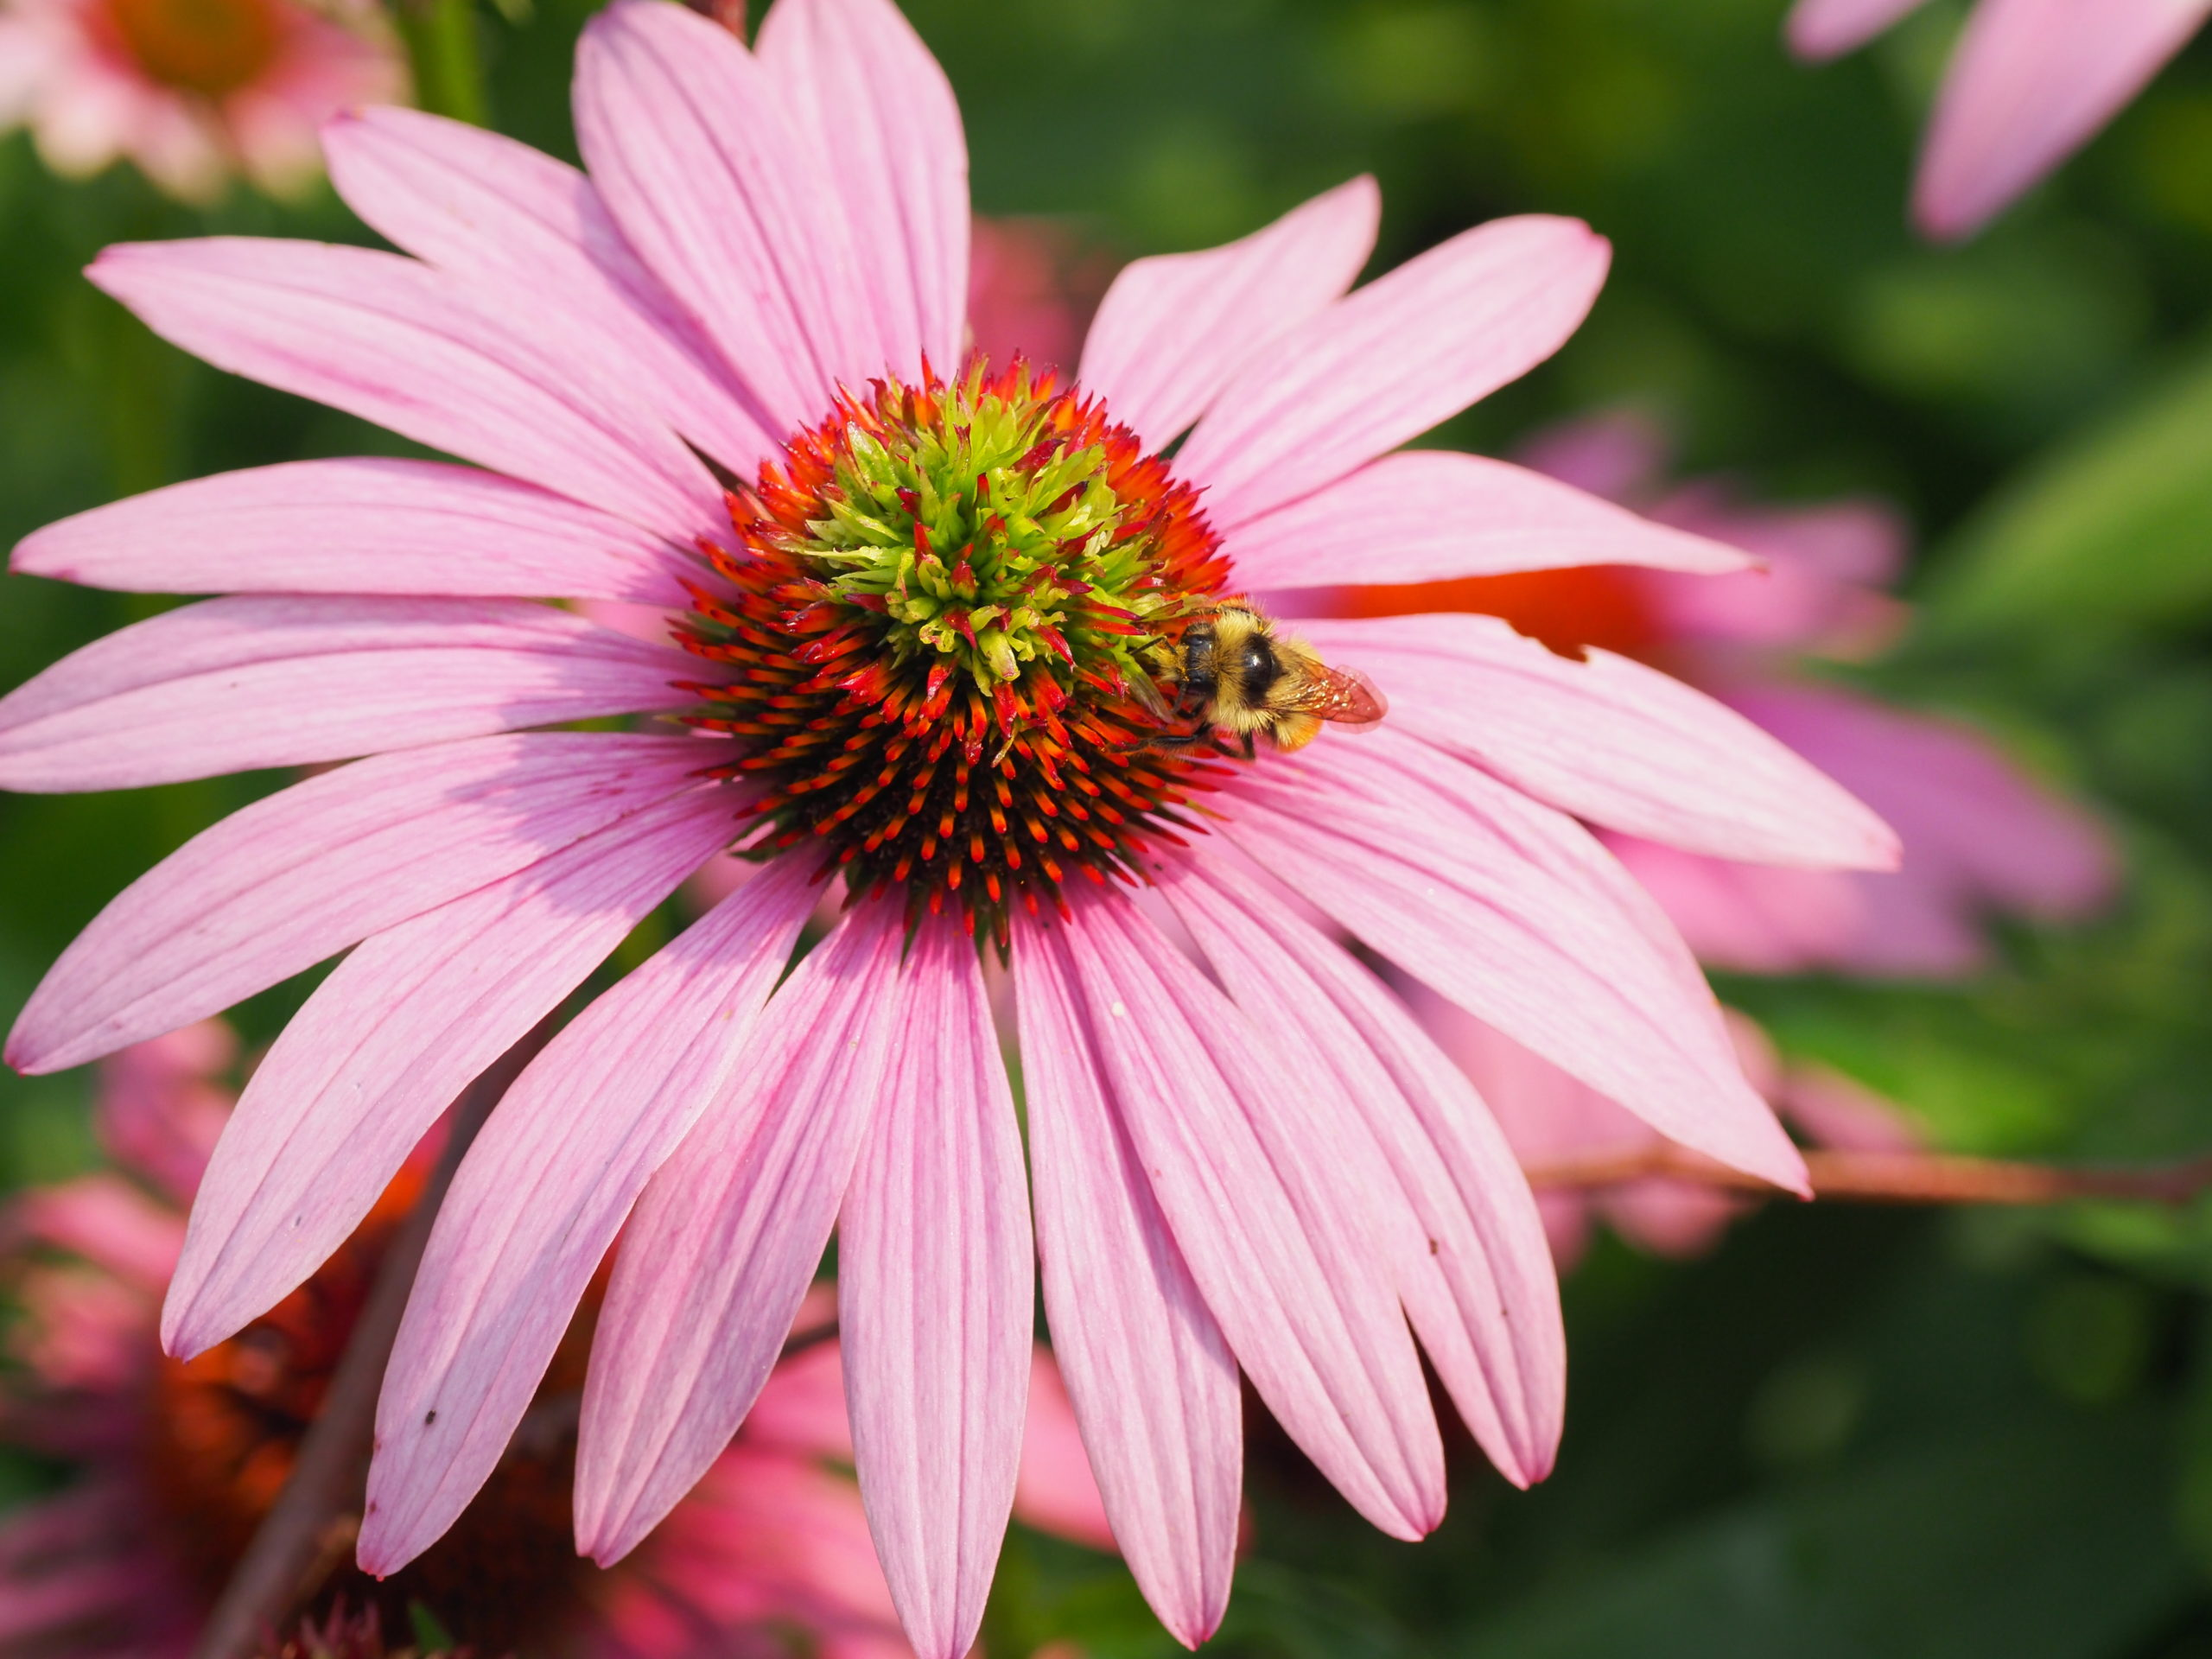 Echinacea purpurea is one of the true wildflowers in the family and attracts a number of pollinators including bees and butterflies.